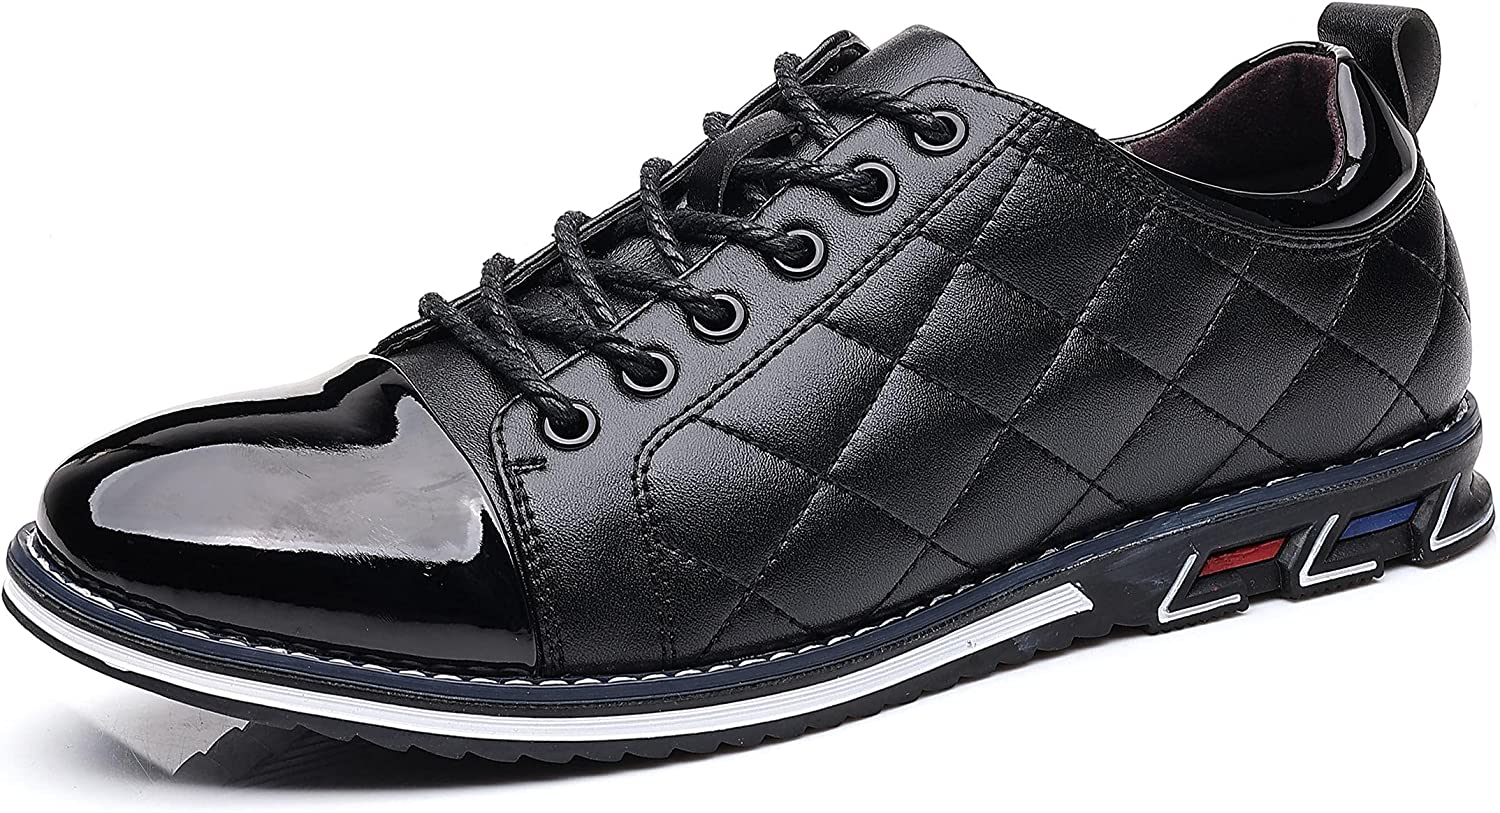 Rapid rise COSIDRAM Mens Stylish Finally resale start Sneakers Casual Shoes Leisure Oxford Dress